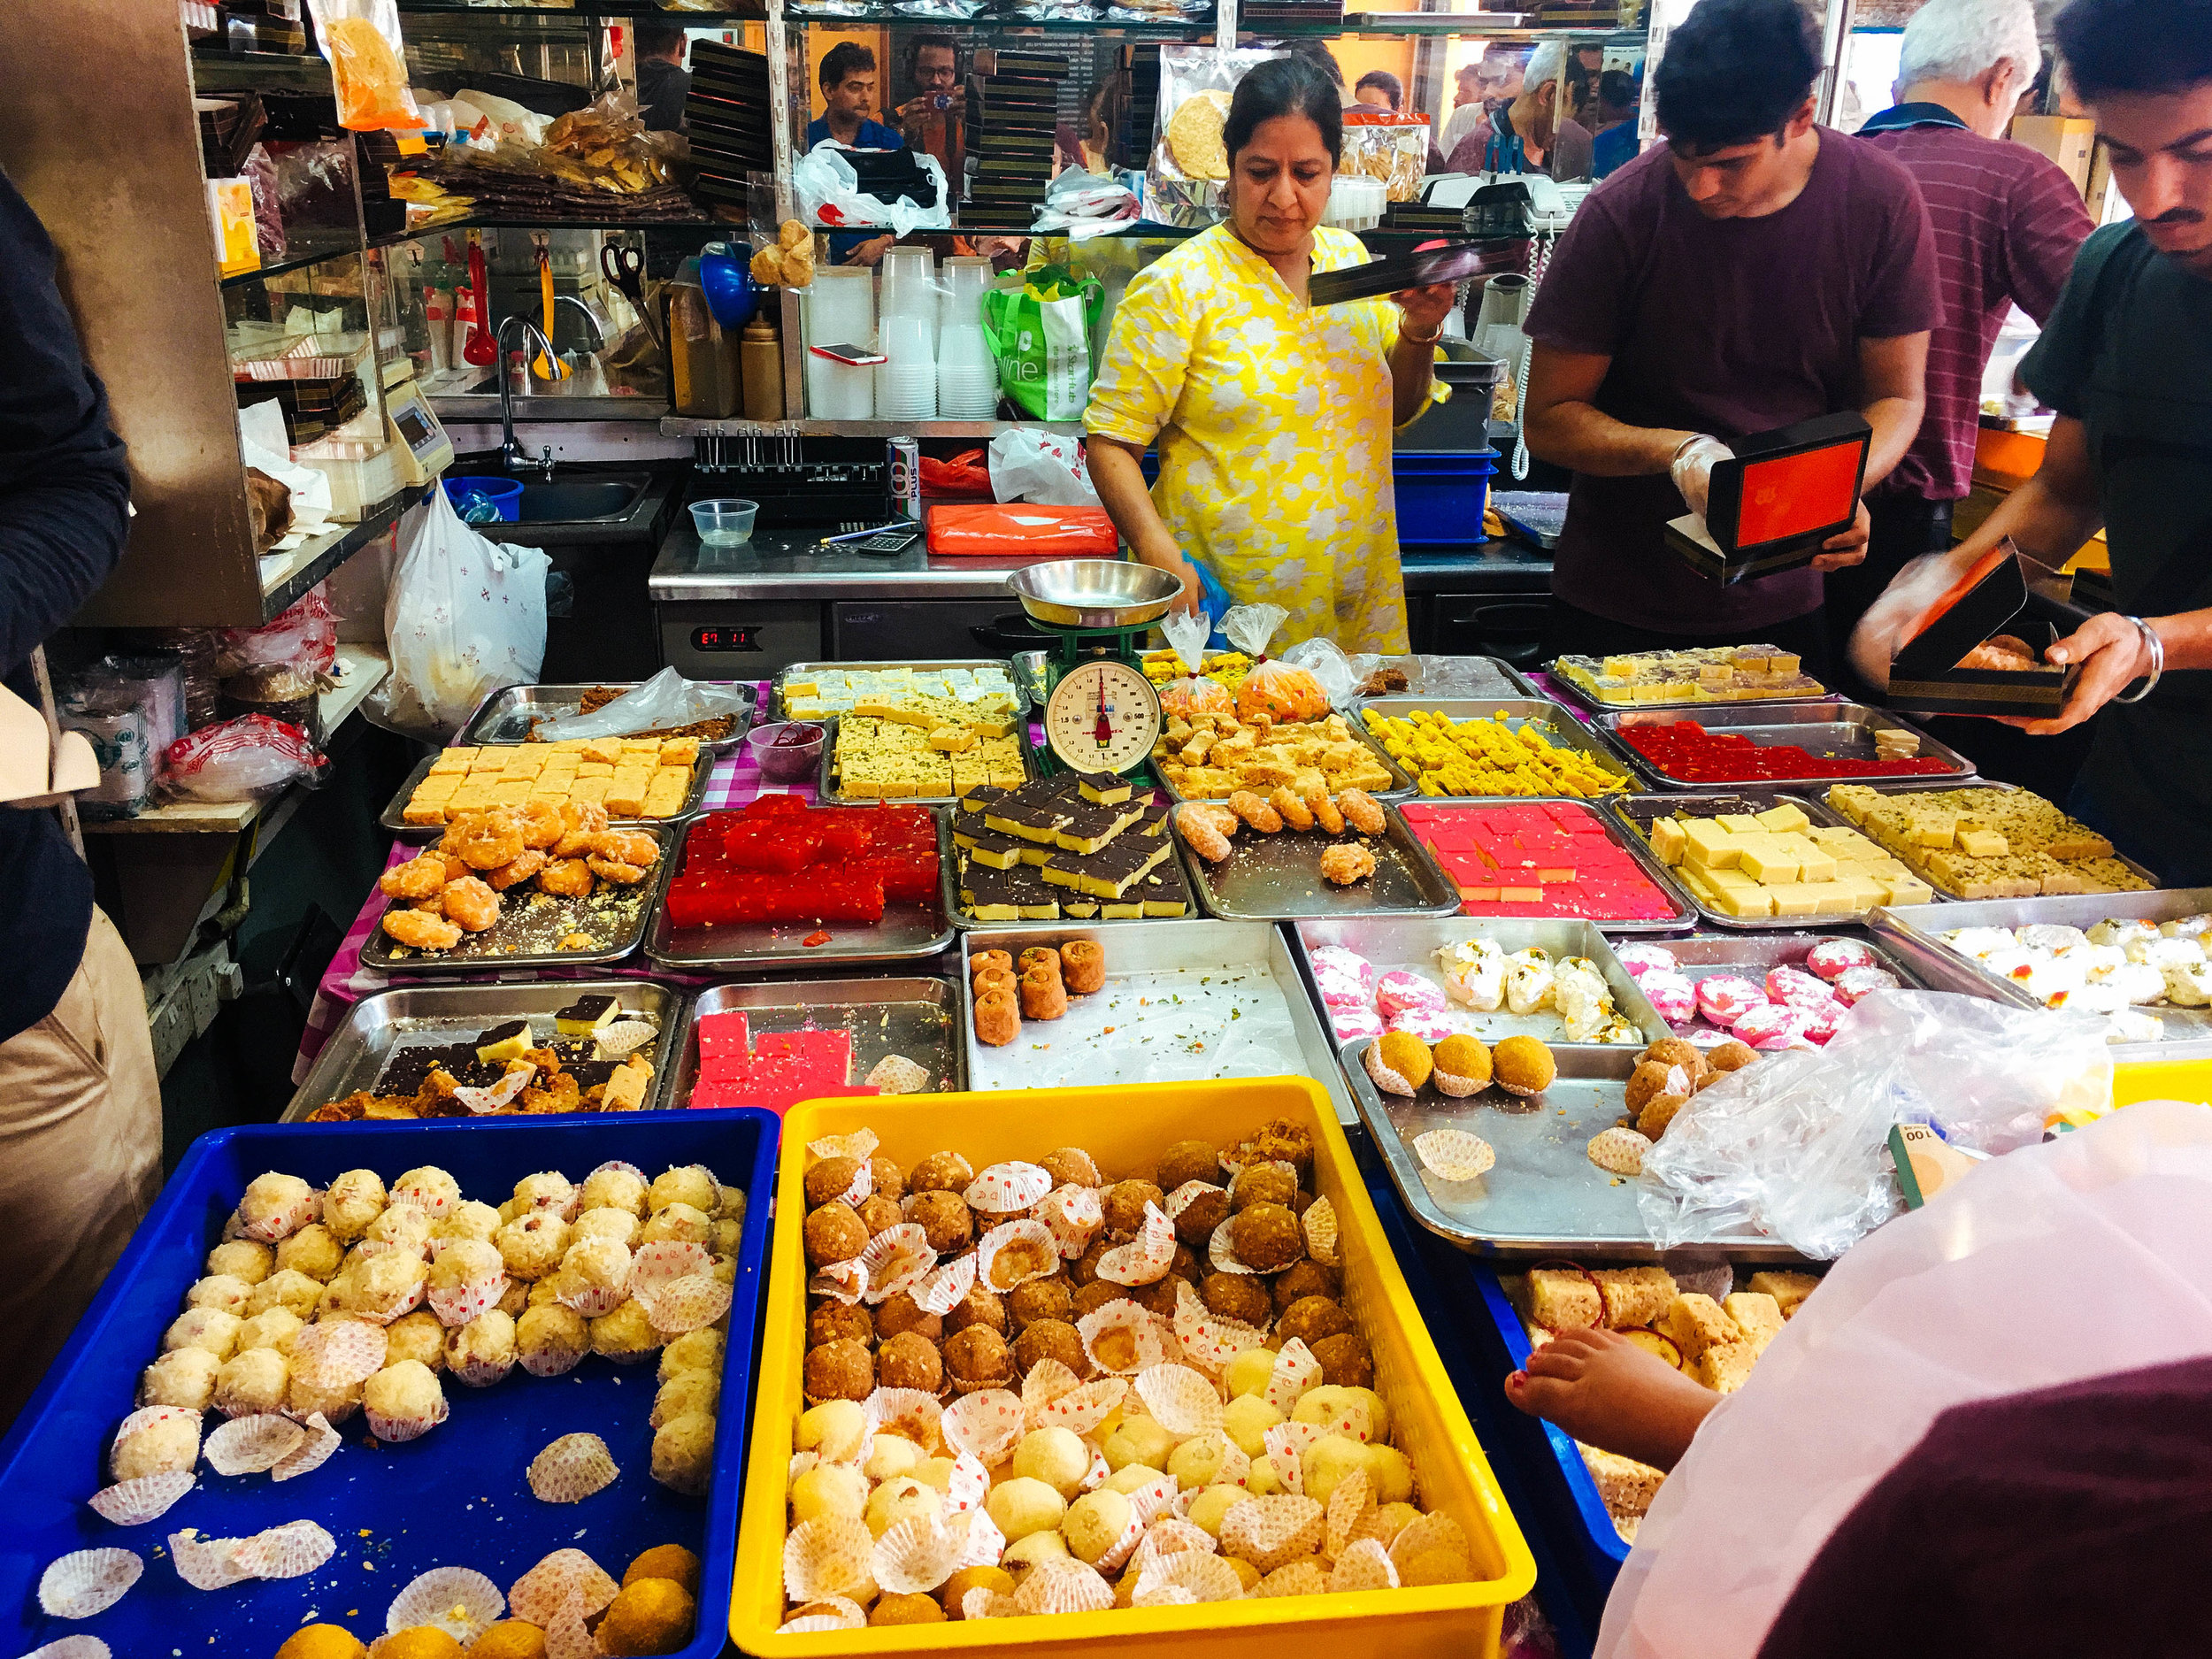 Buying sweets for Deepavali celebrations in Little India, Singapore